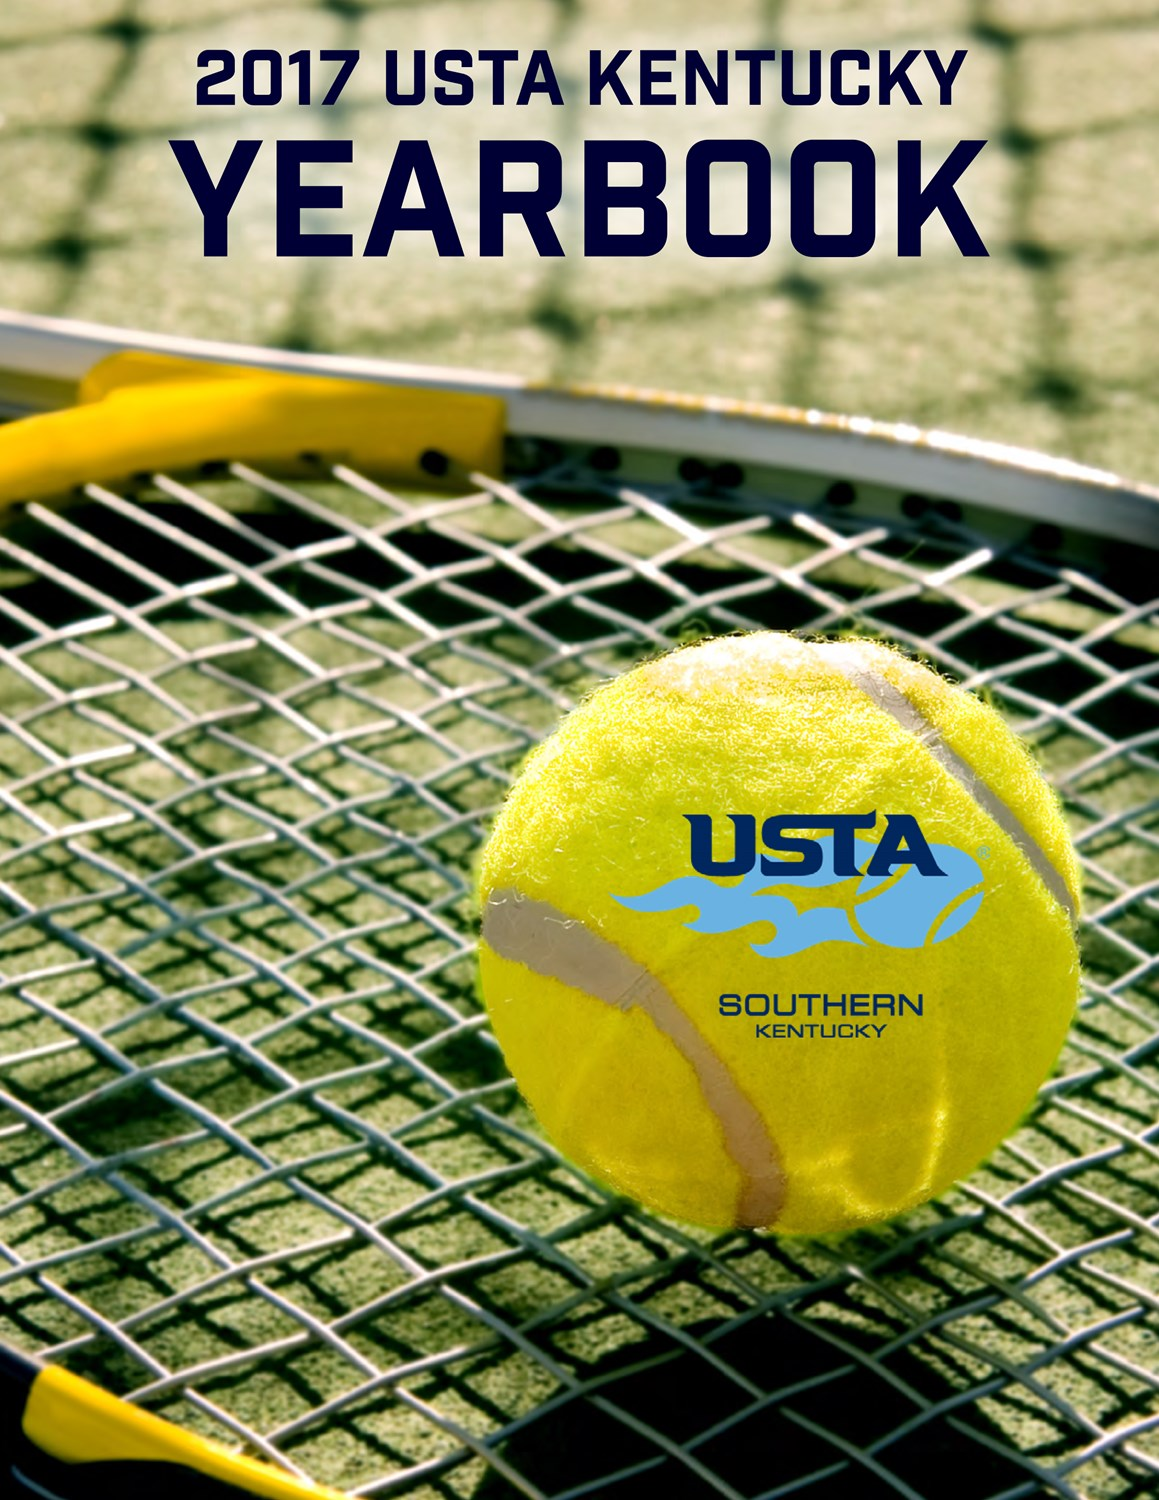 USTA_Kentucky_2017_Yearbook_Cover